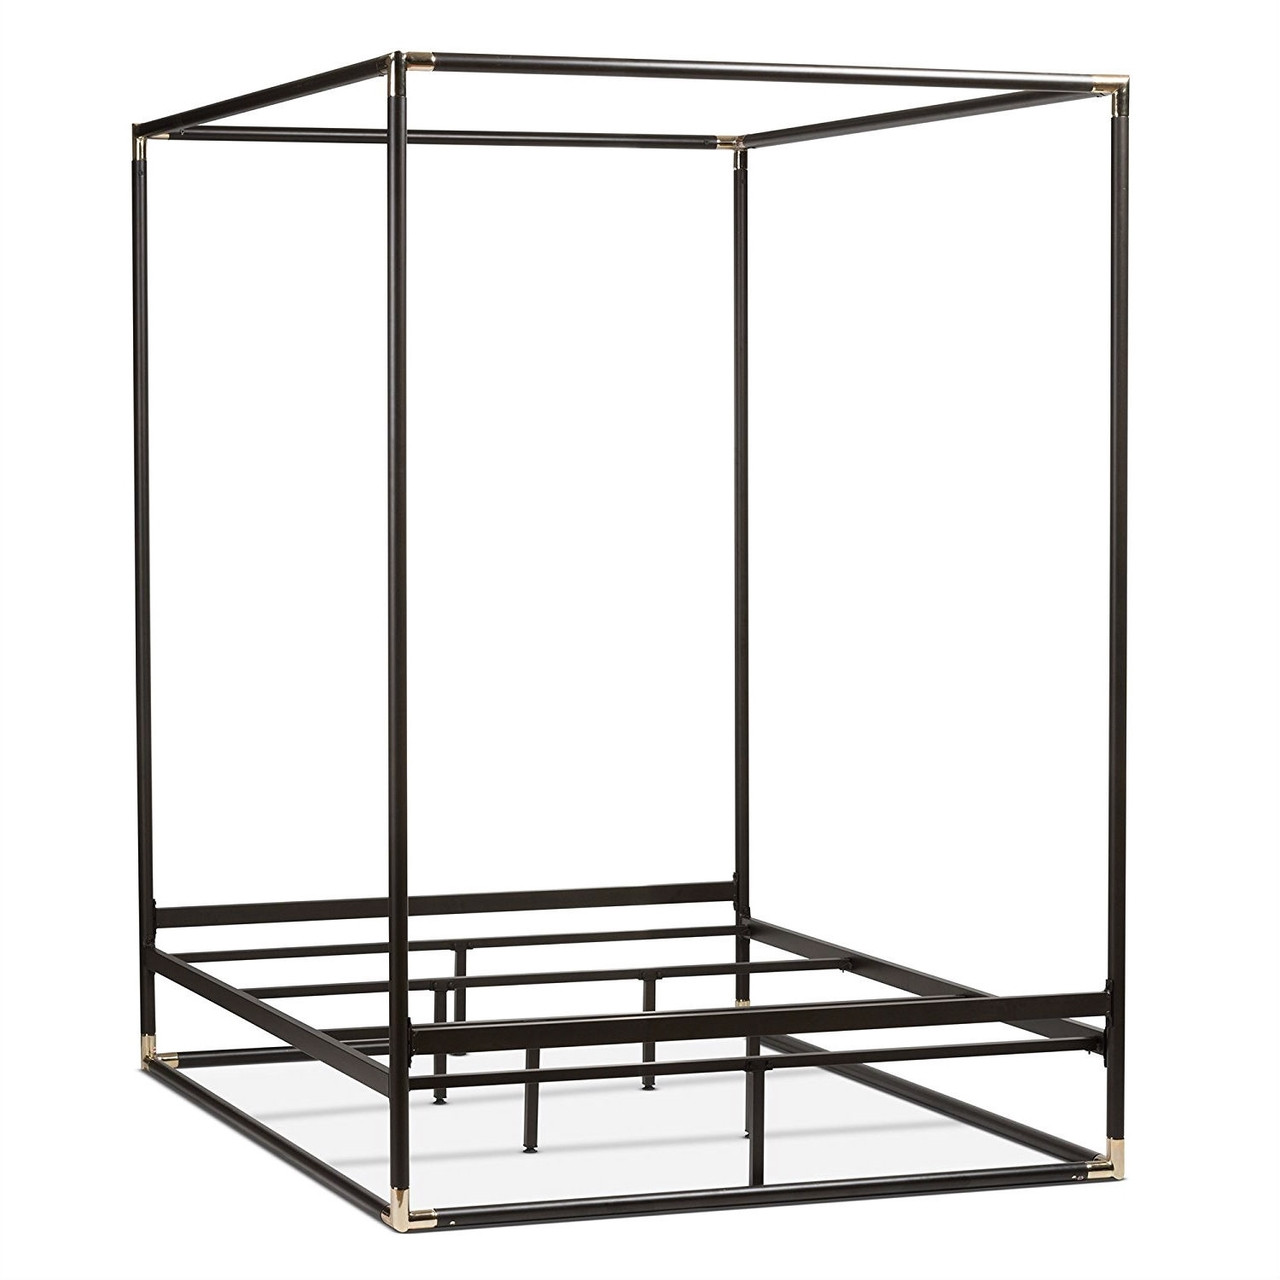 - Queen Canopy Bed Frame, Industrial Style Black Metal - Quality House